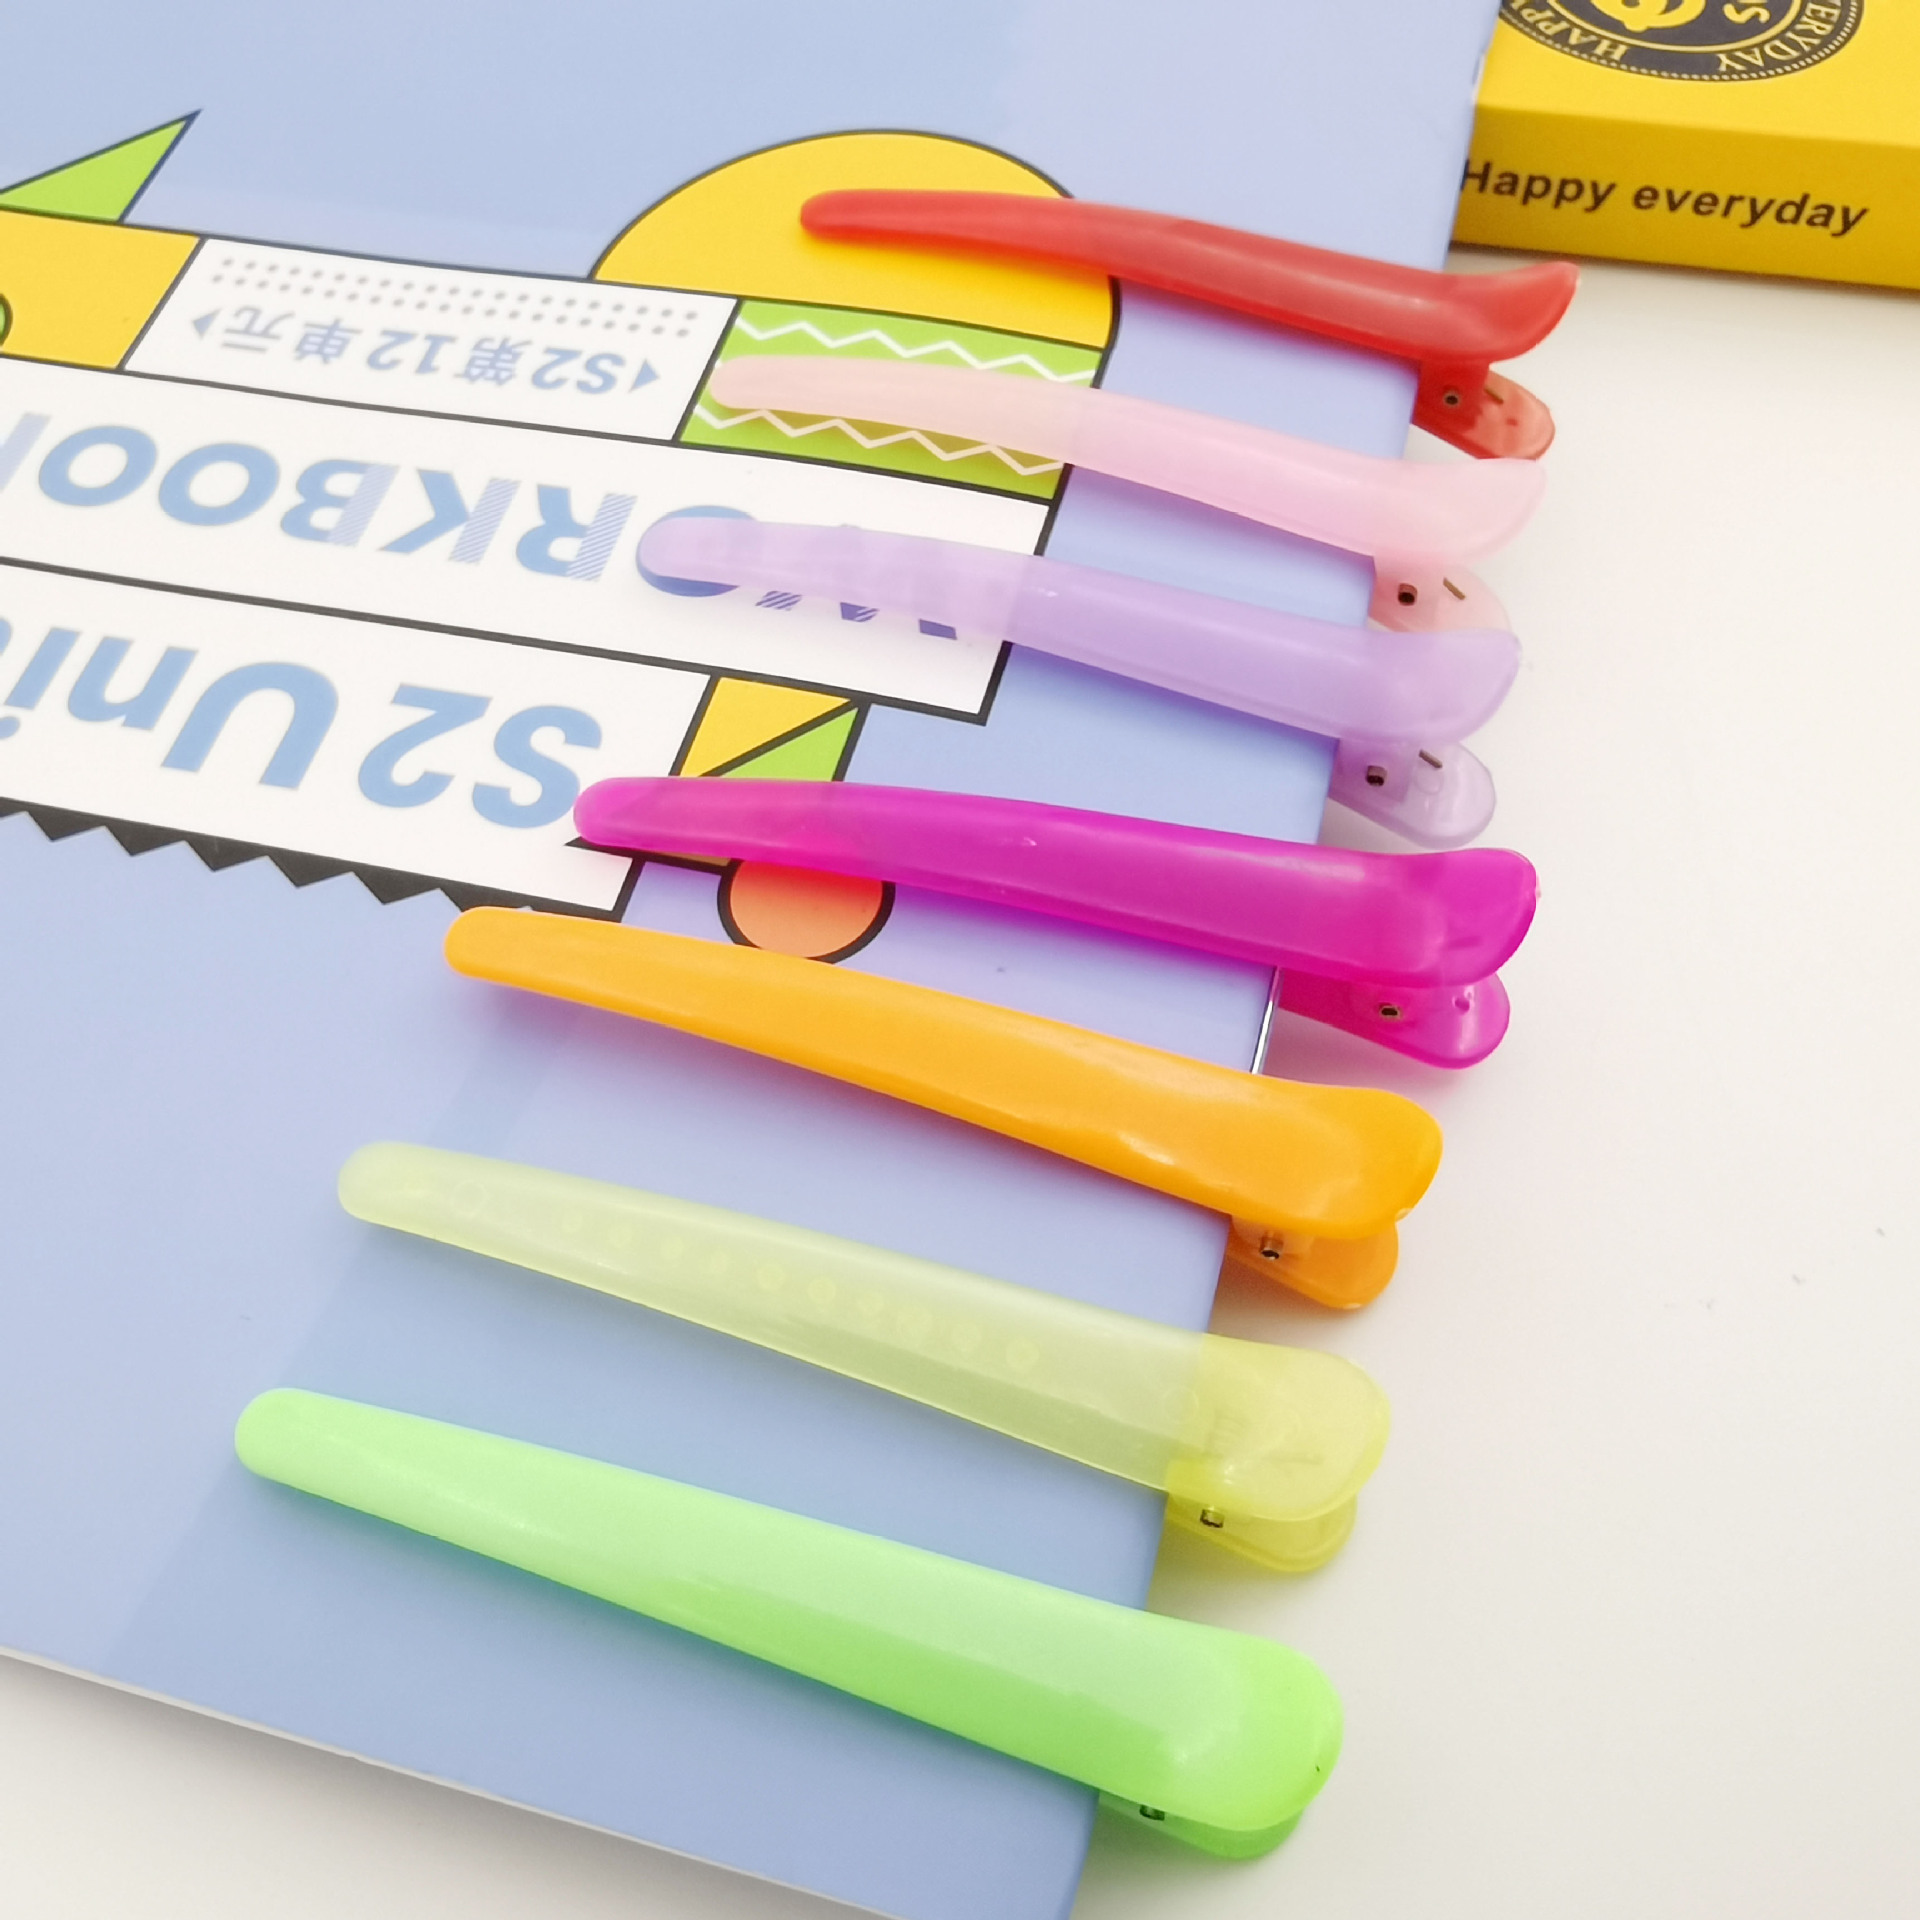 Candy-Colored Plastic Hair Clips for Students Cute Hairstyles